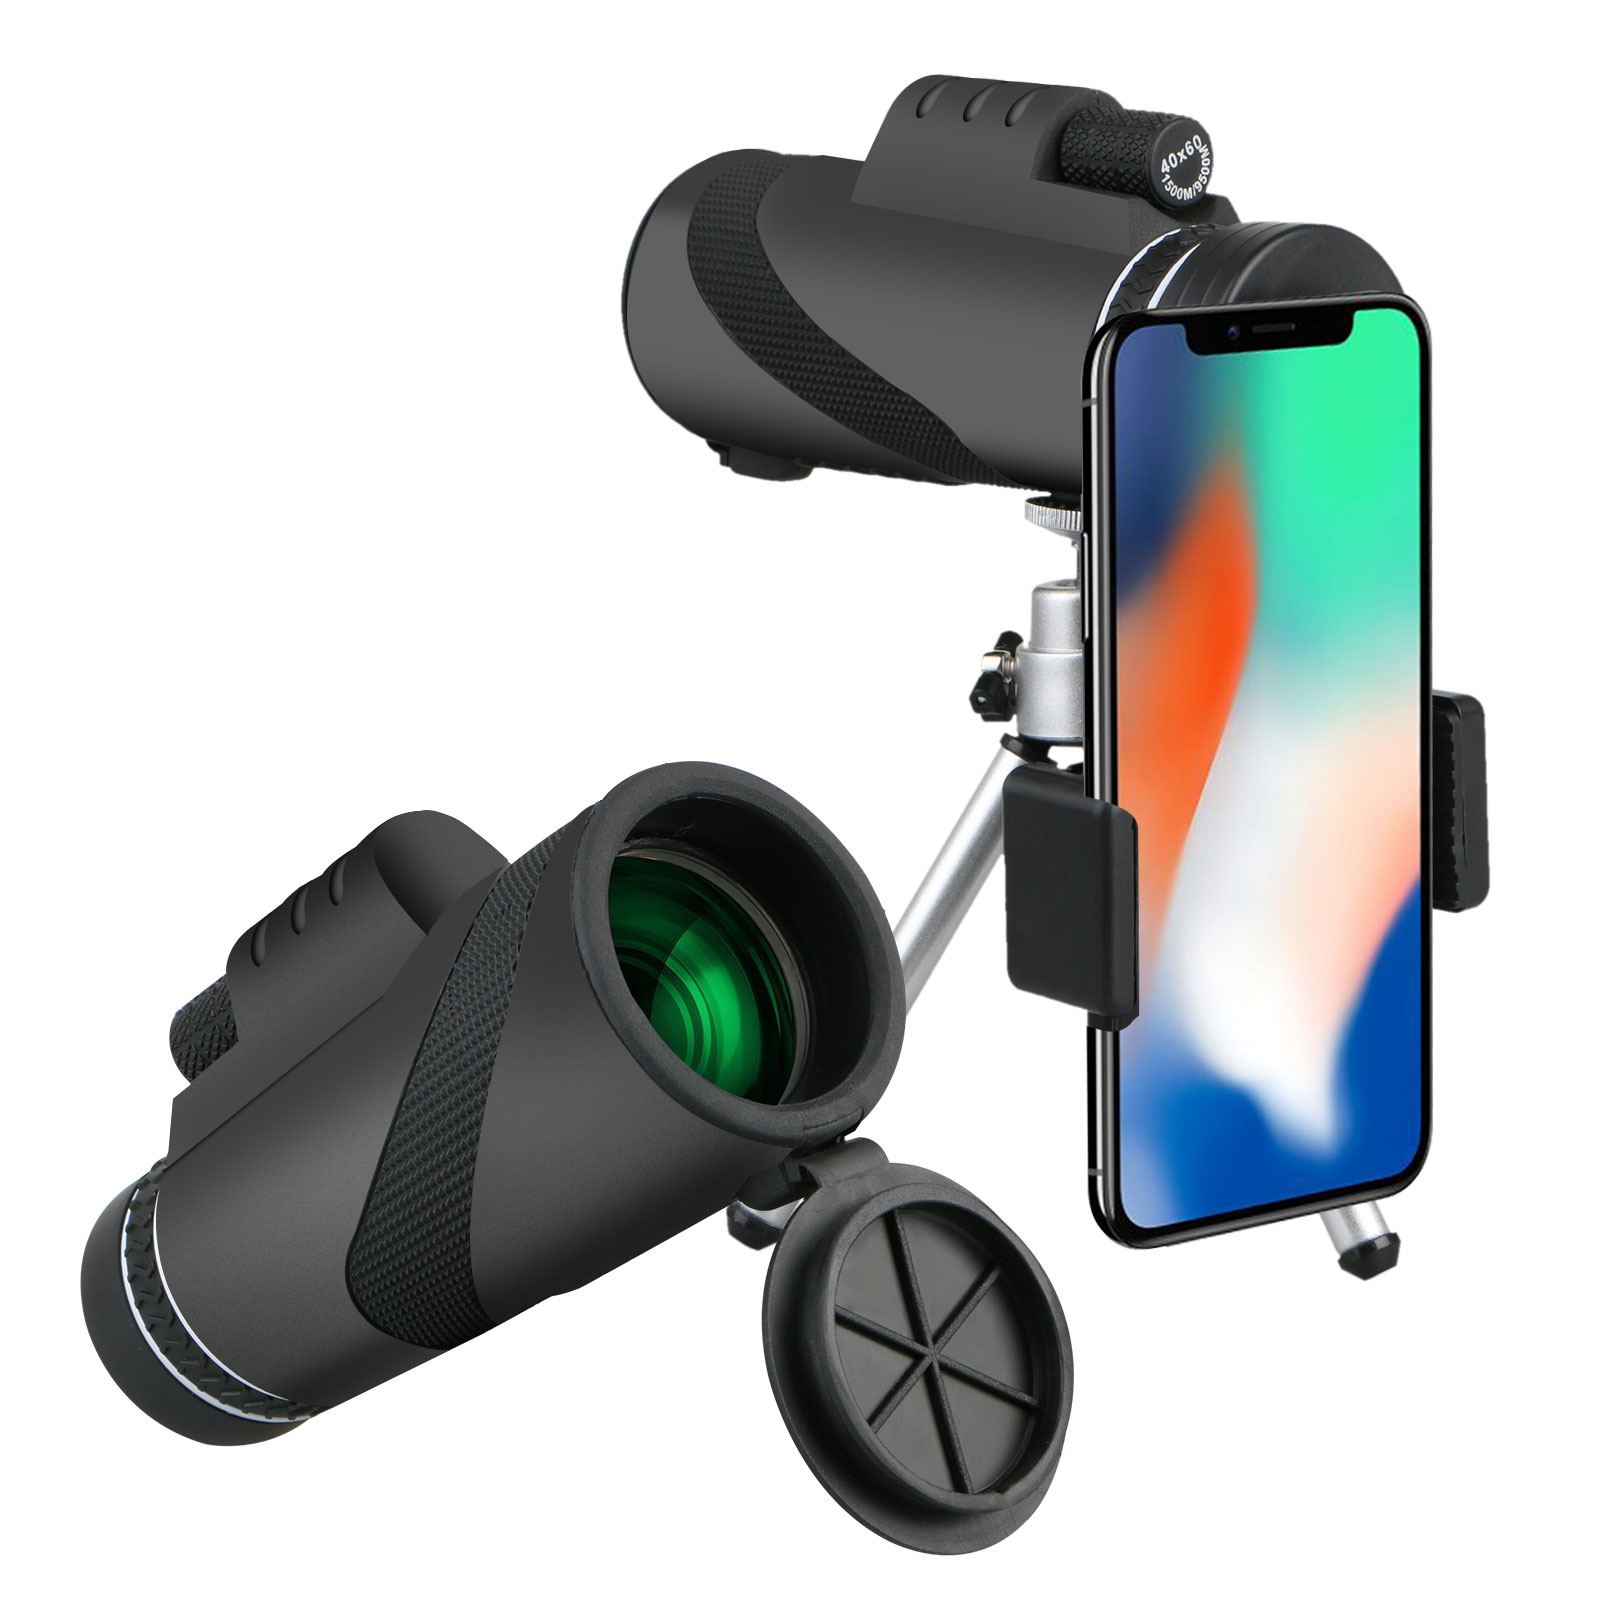 40x60 Waterproof Clip-On Monocular, High Power Monocular Telescope Cellphone Camera Lens with Tripod Mount for Hunting, Camping, Bird Watching, Travelling